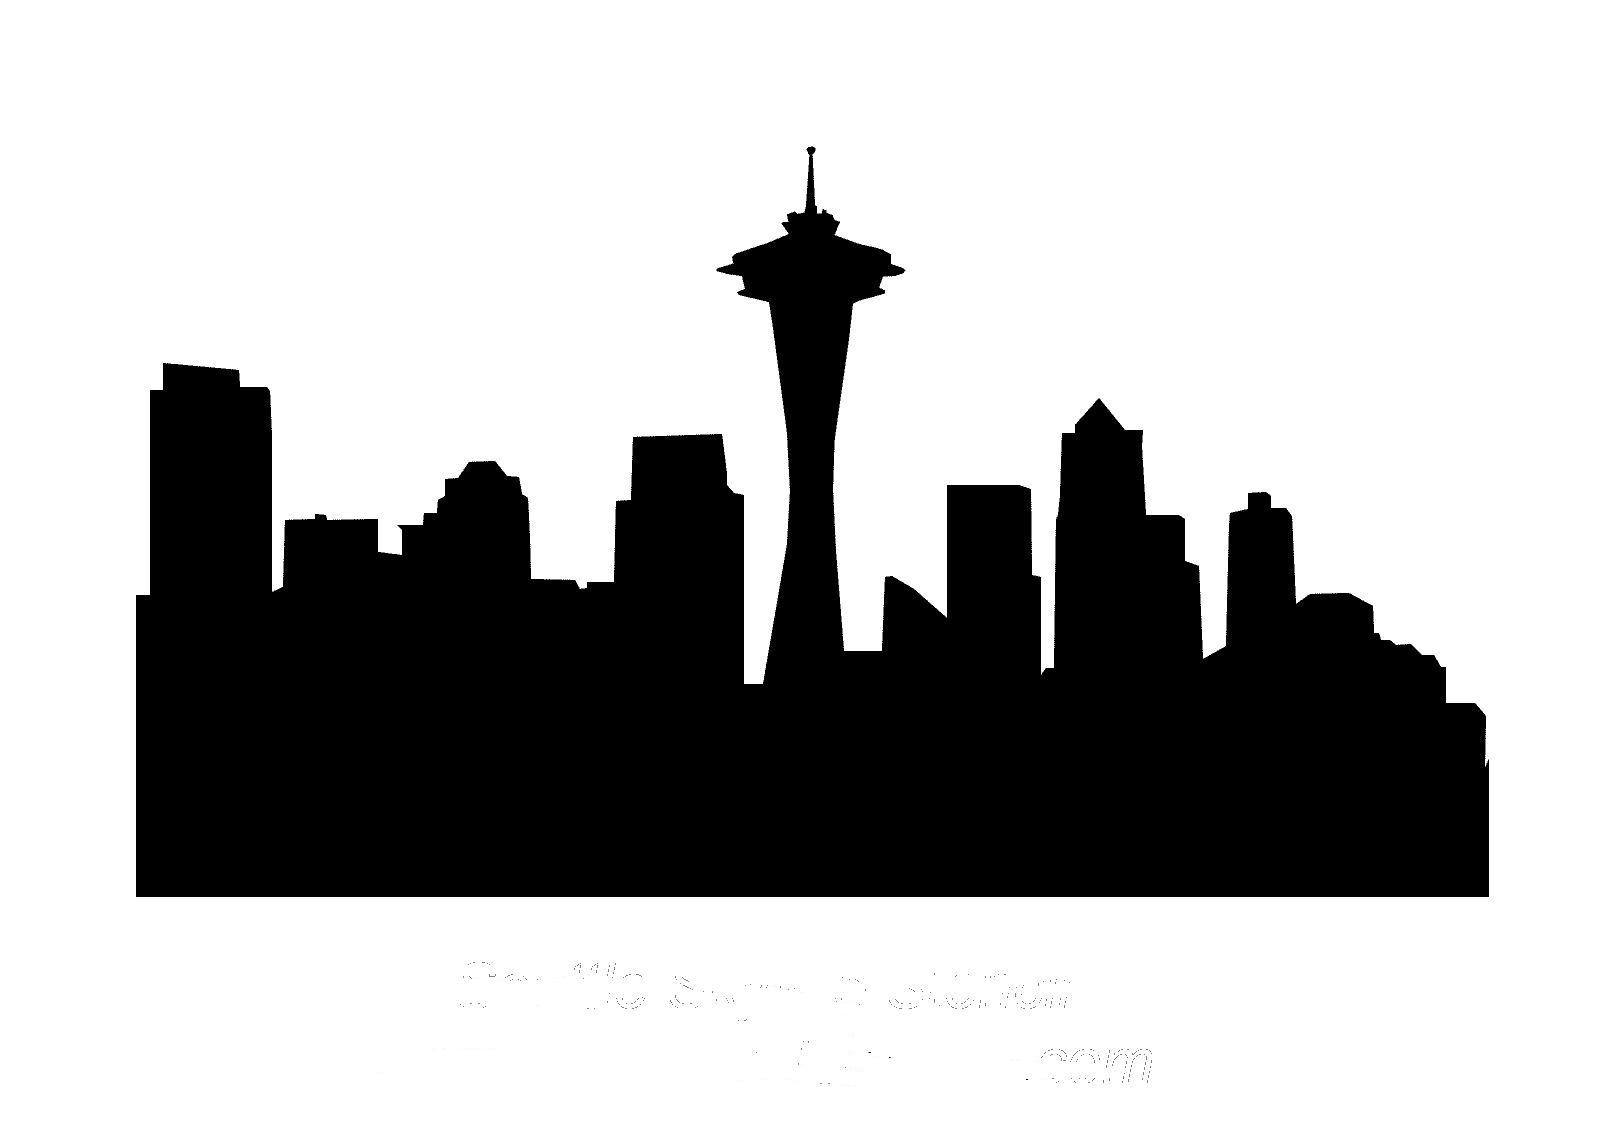 seattle skyline vector s3 episode 1 cities and their coffee cultures boise coffee vector seattle skyline